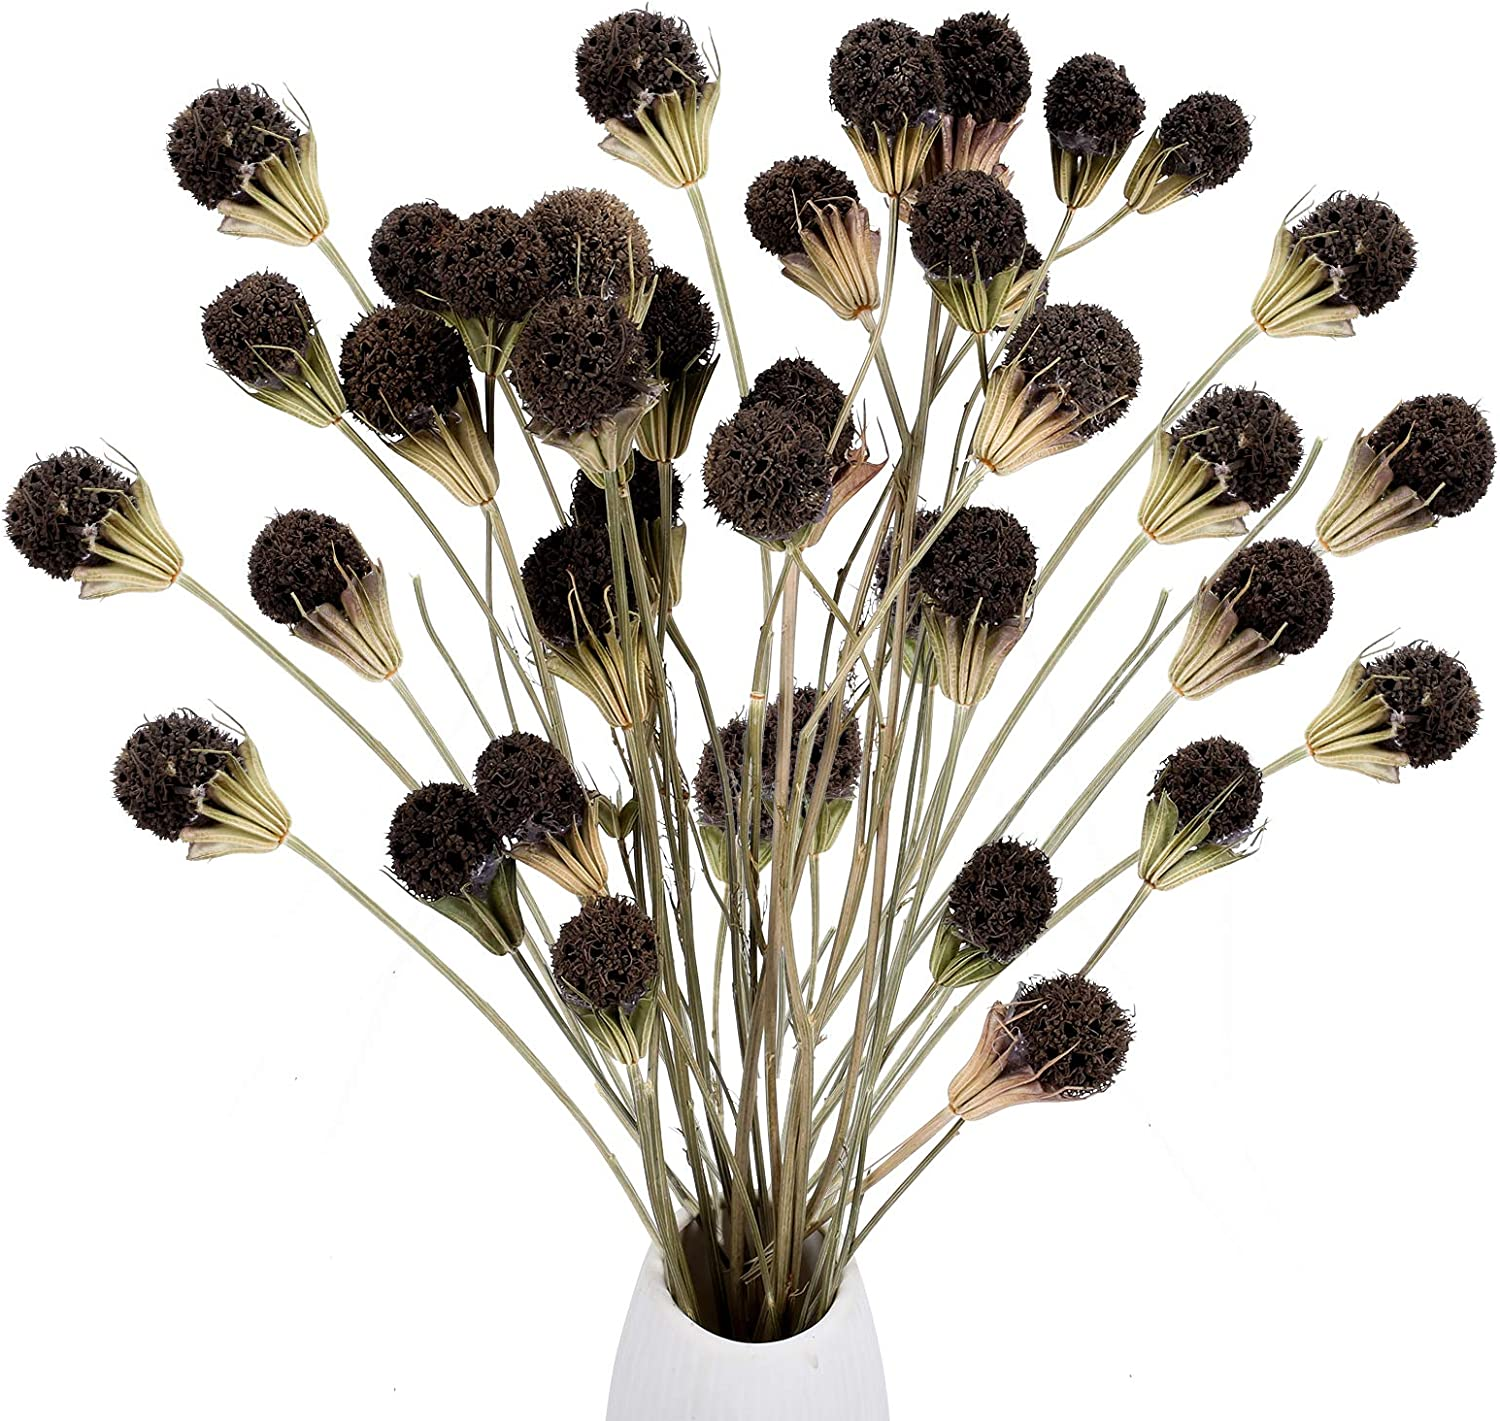 XHXSTORE 2Pcs Dried Flowers Natural Special price for a limited depot time Cones Flo Bouquet Pine